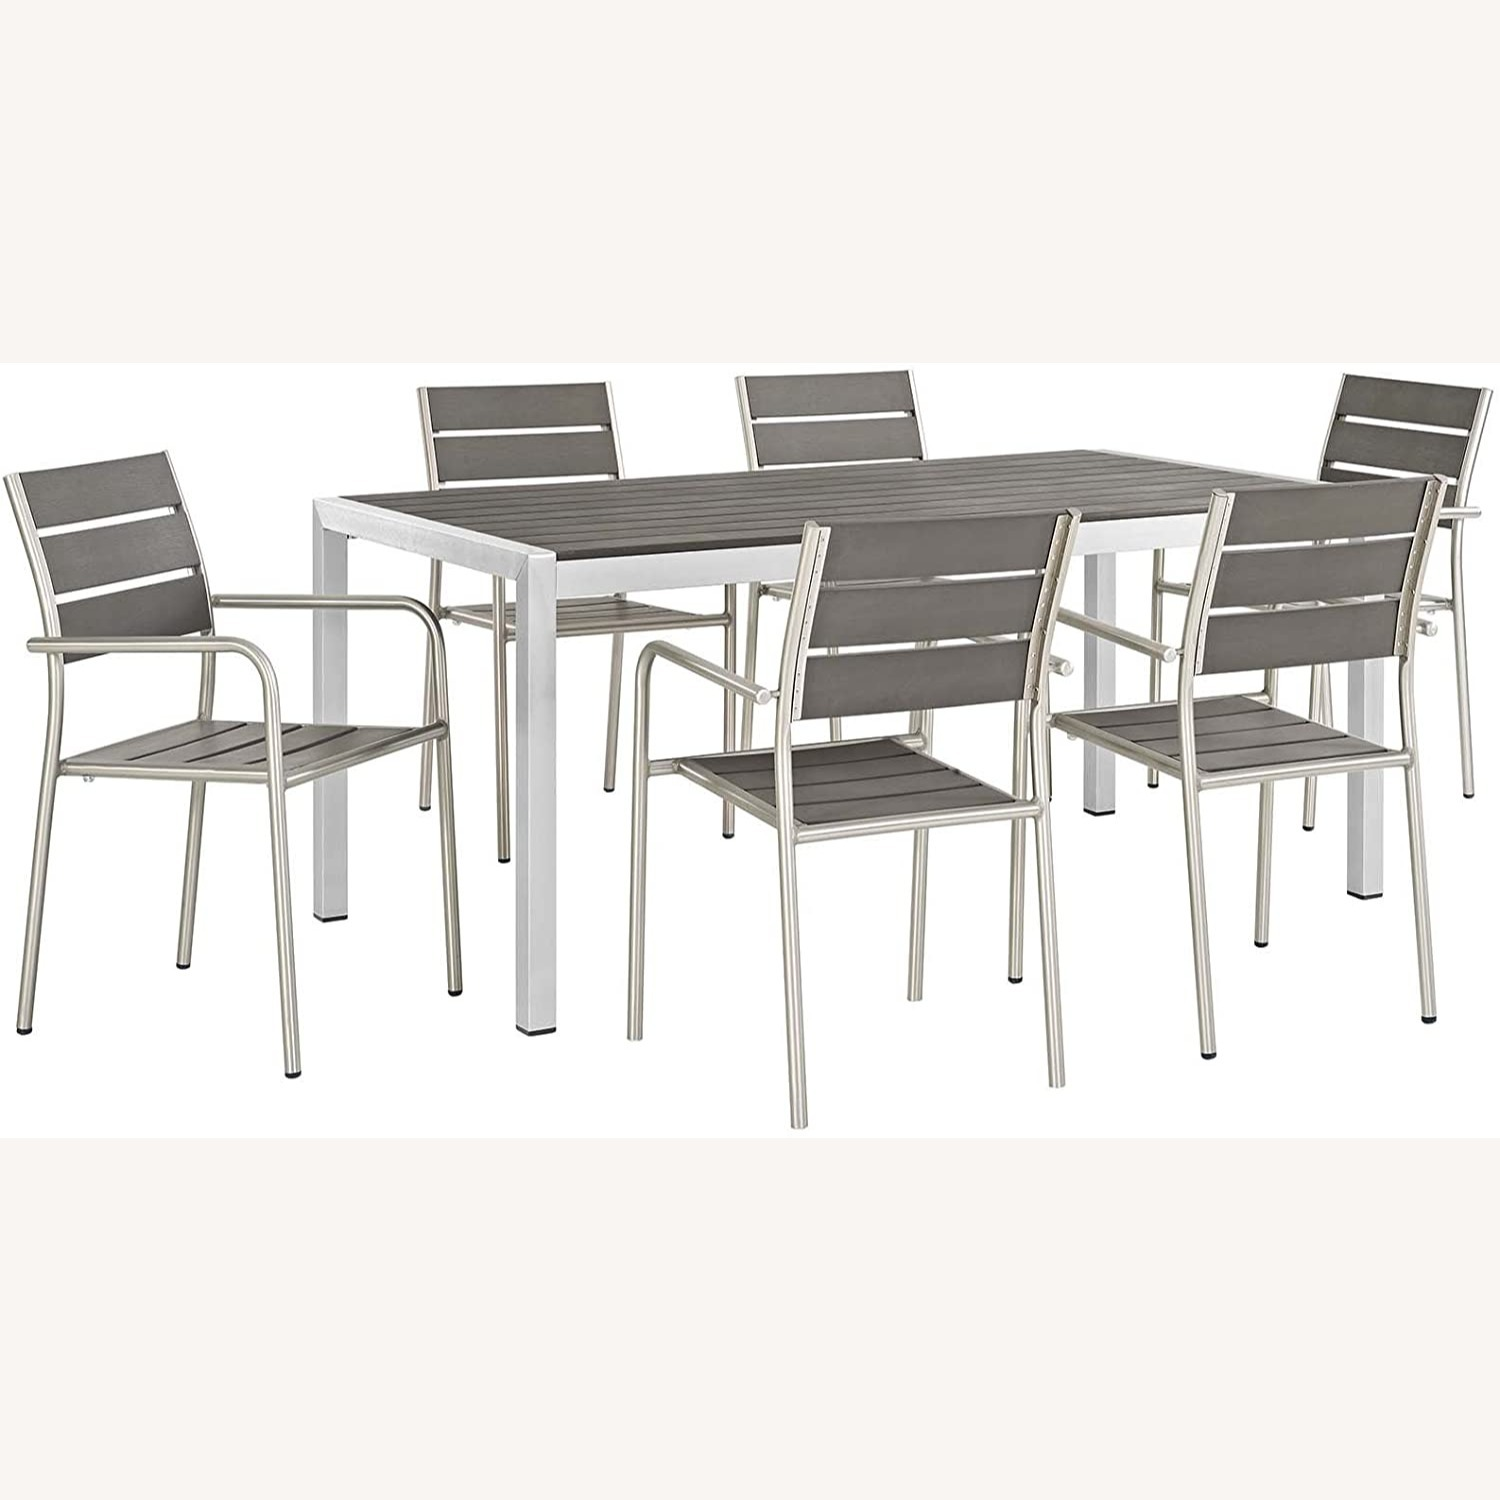 Modern 7-Piece Outdoor Dining Set In Silver & Gray - image-0